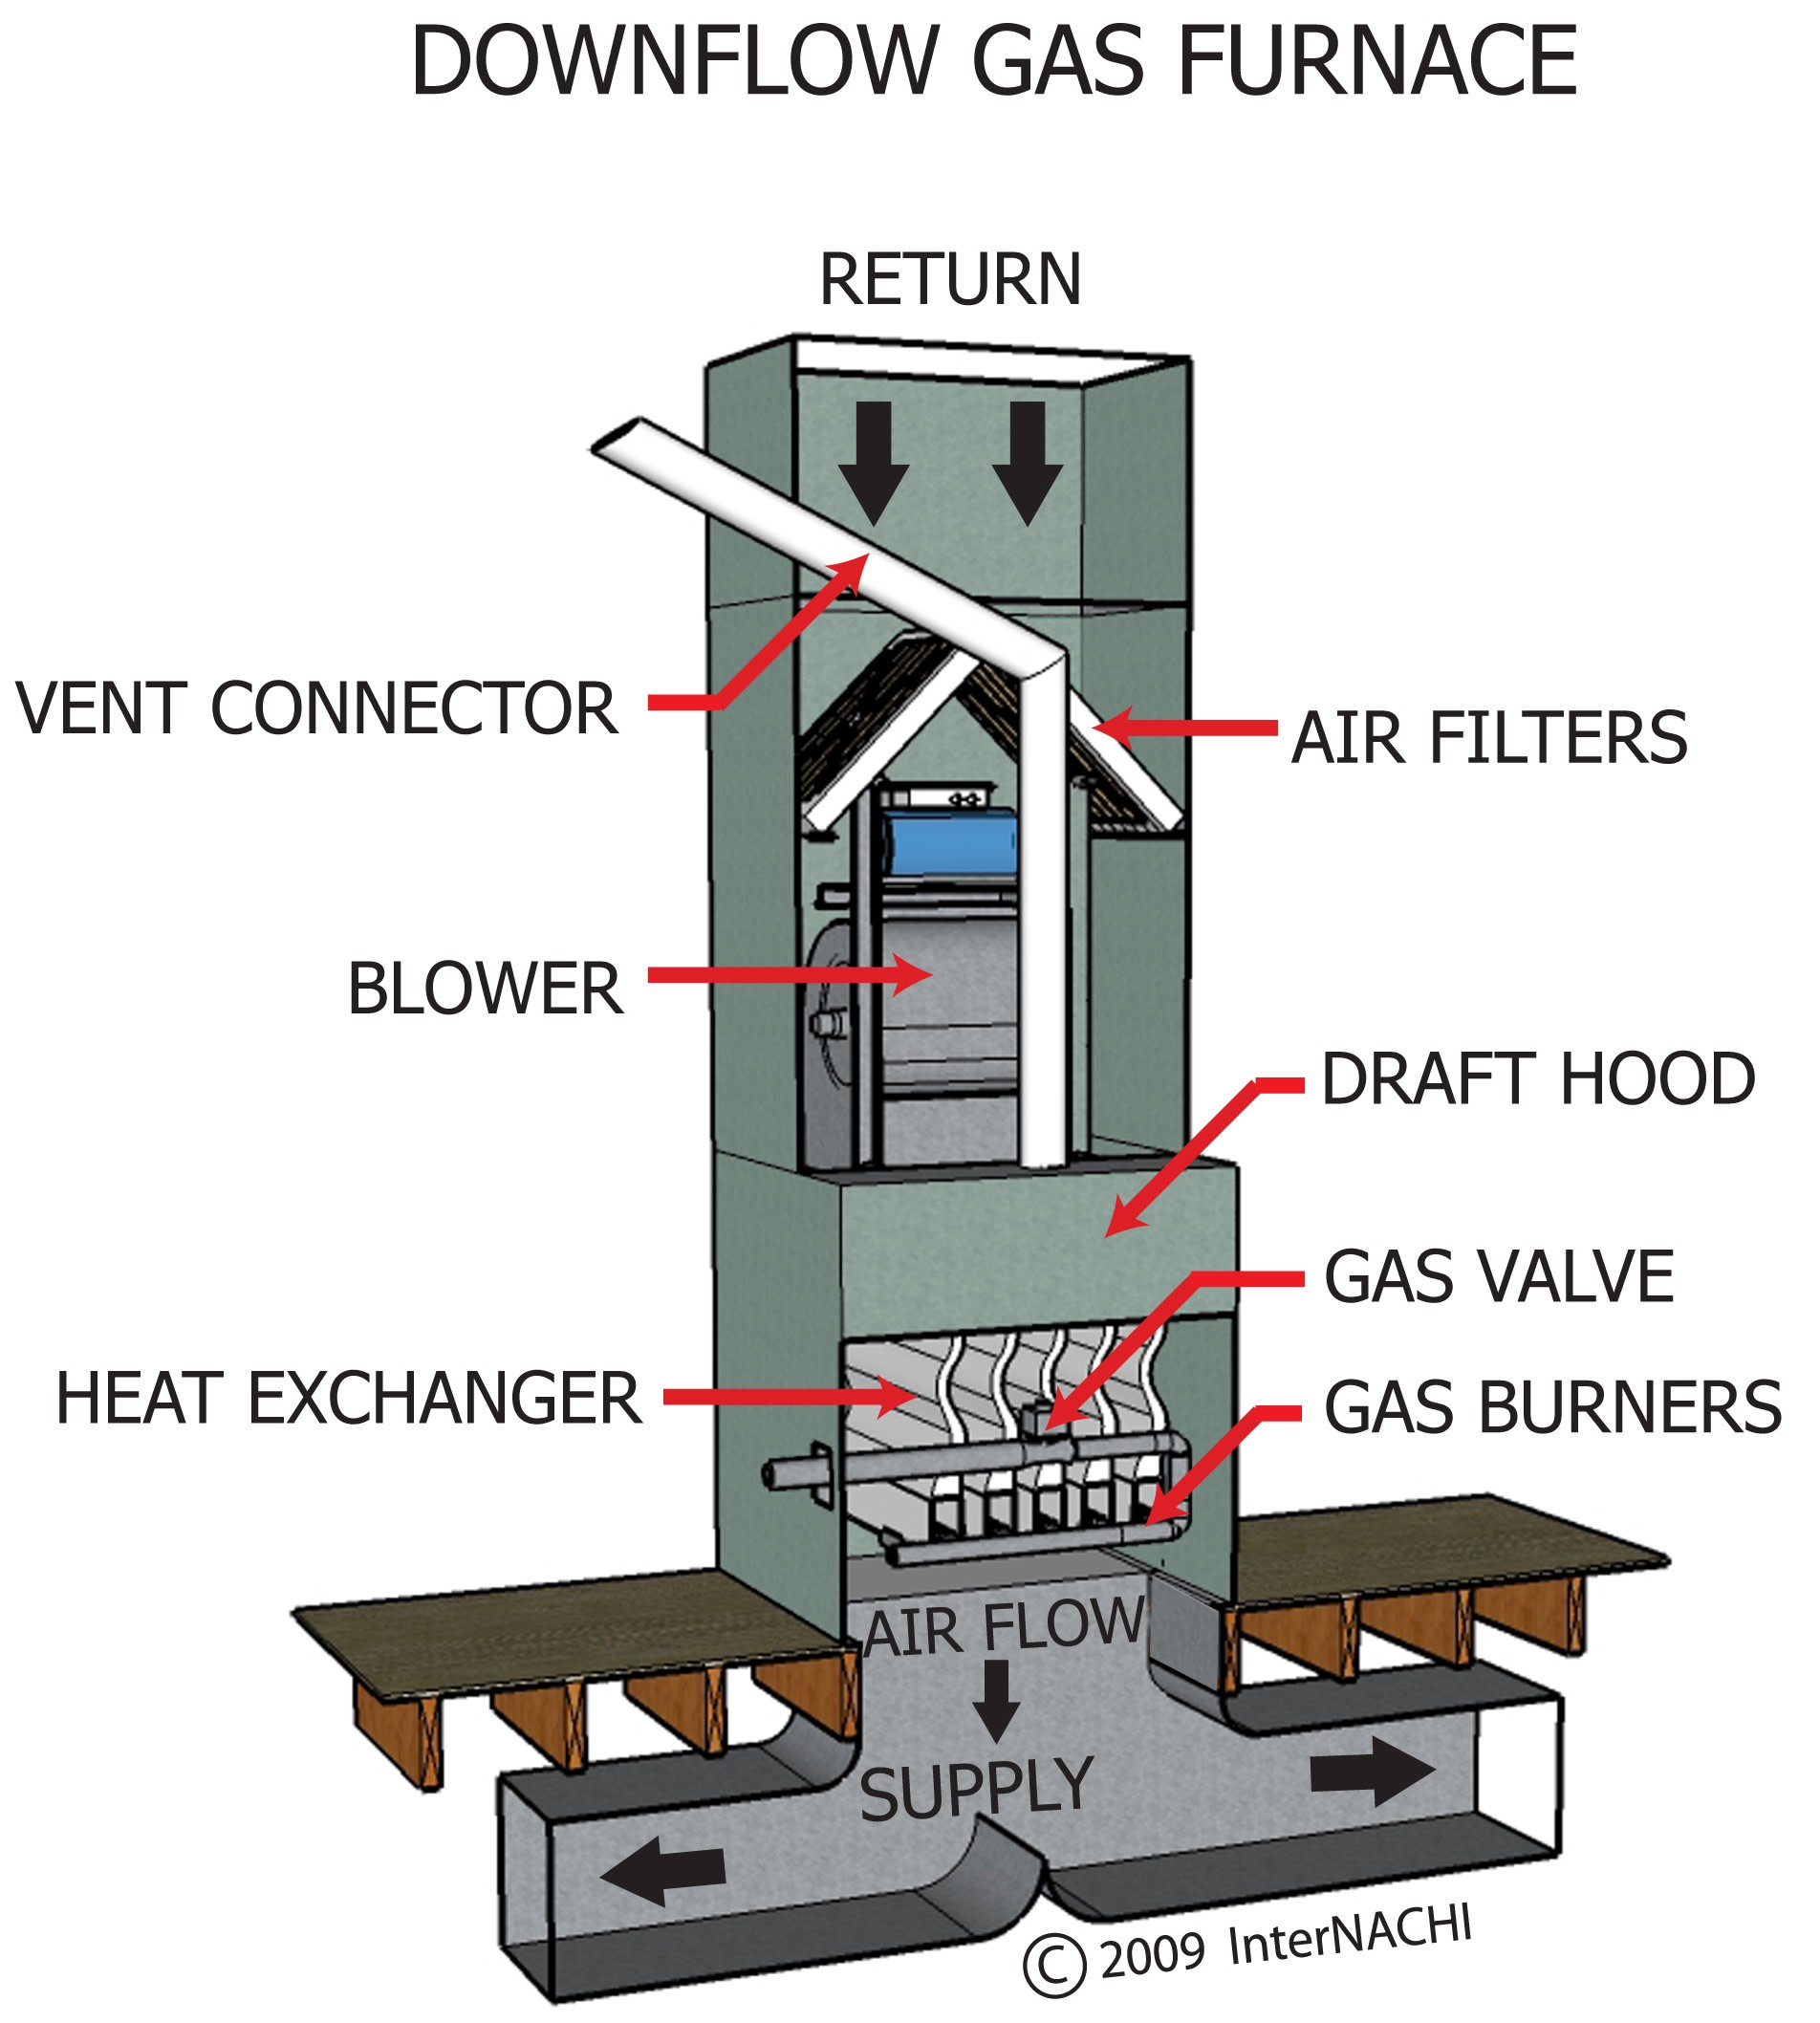 Downflow Gas Furnace